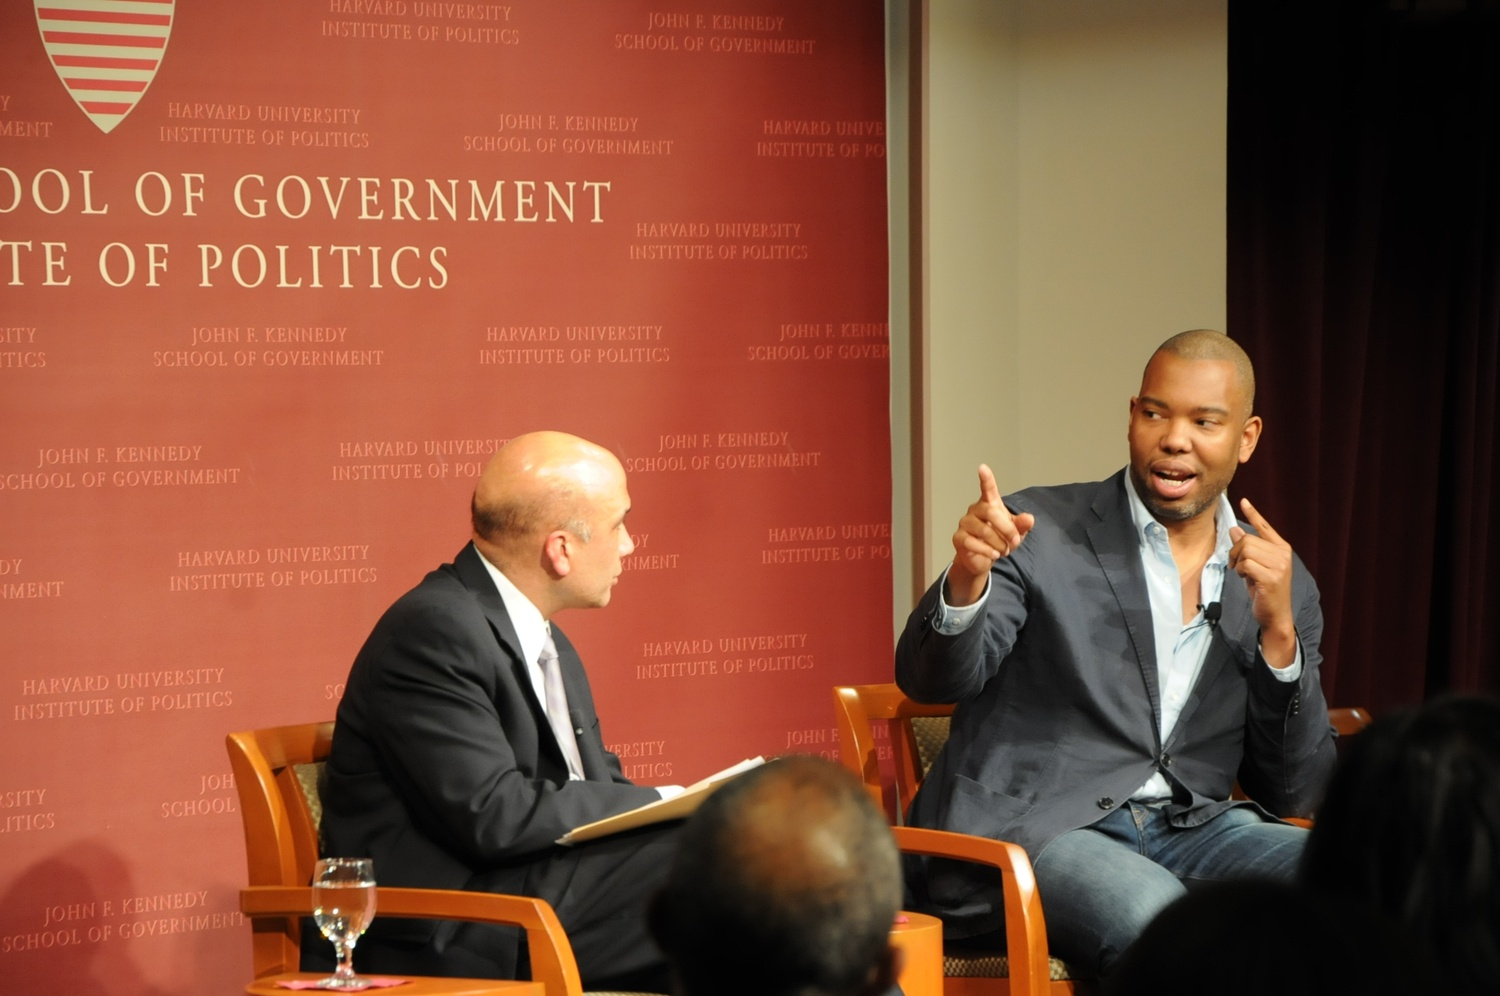 Ta-Nehisi Coates speaks about the hardships of being black in the U.S. Coates was invited to speak at the IOP on Wednesday evening.